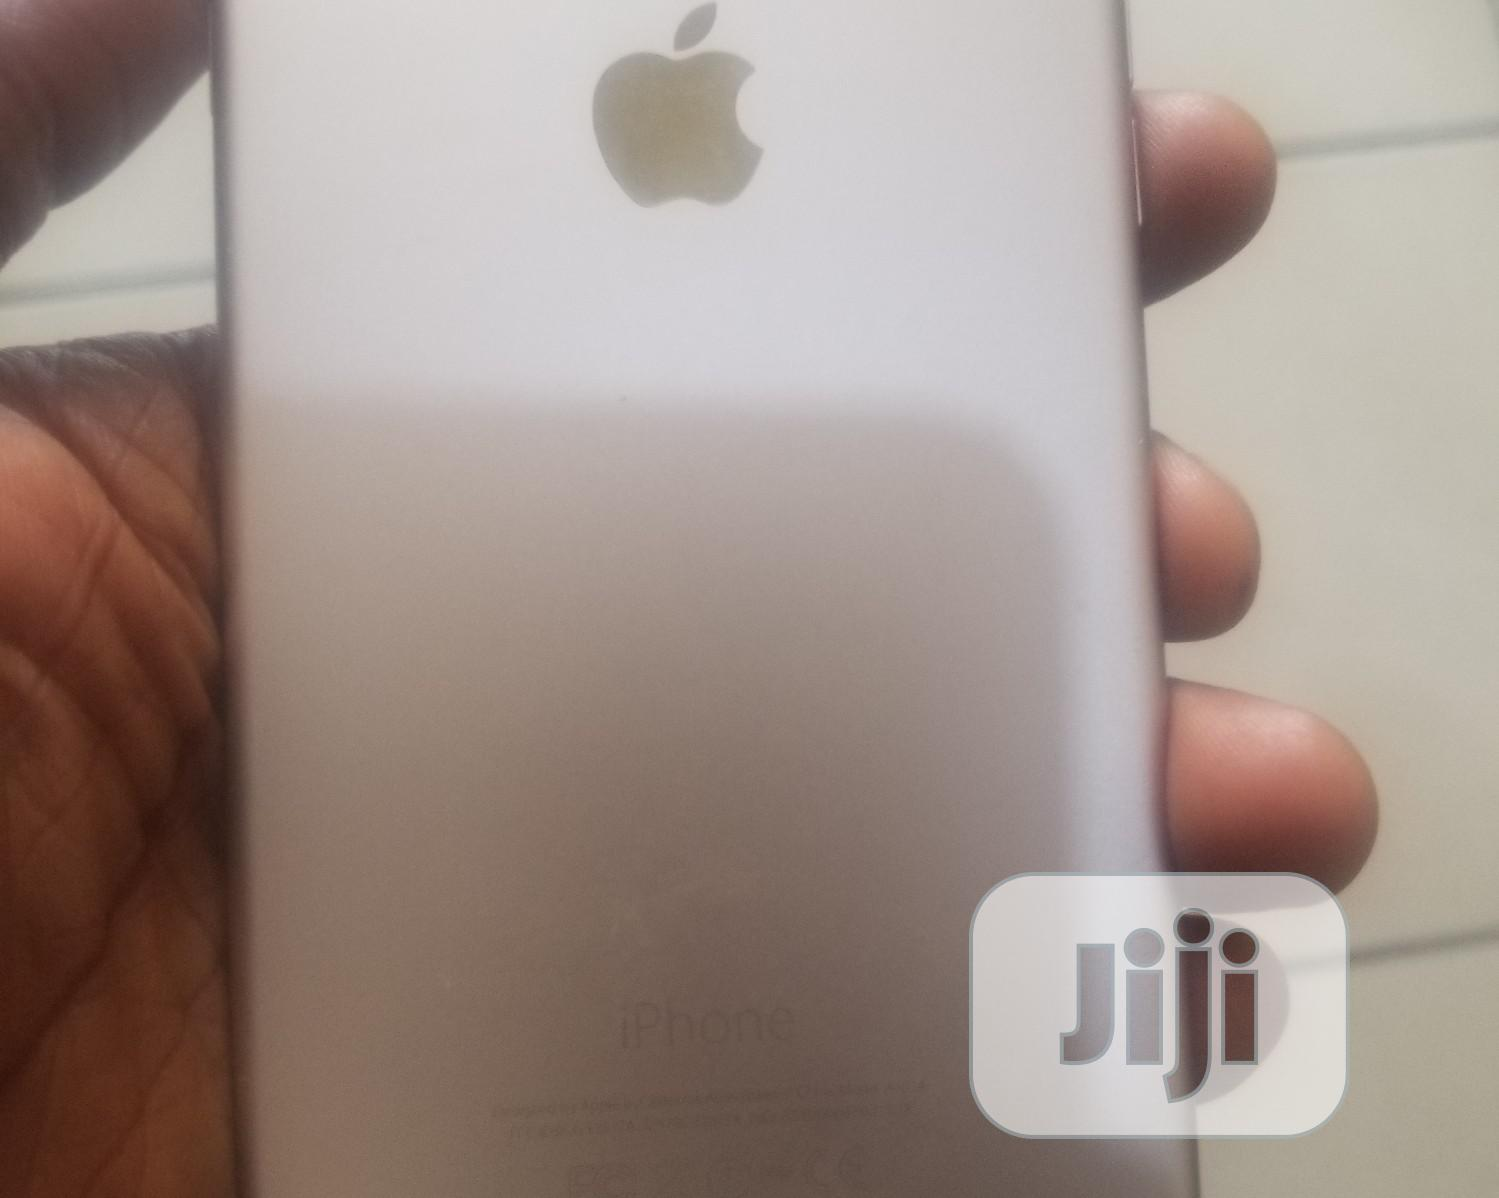 Apple iPhone 6 Plus 64 GB Gold | Mobile Phones for sale in Wuse 2, Abuja (FCT) State, Nigeria